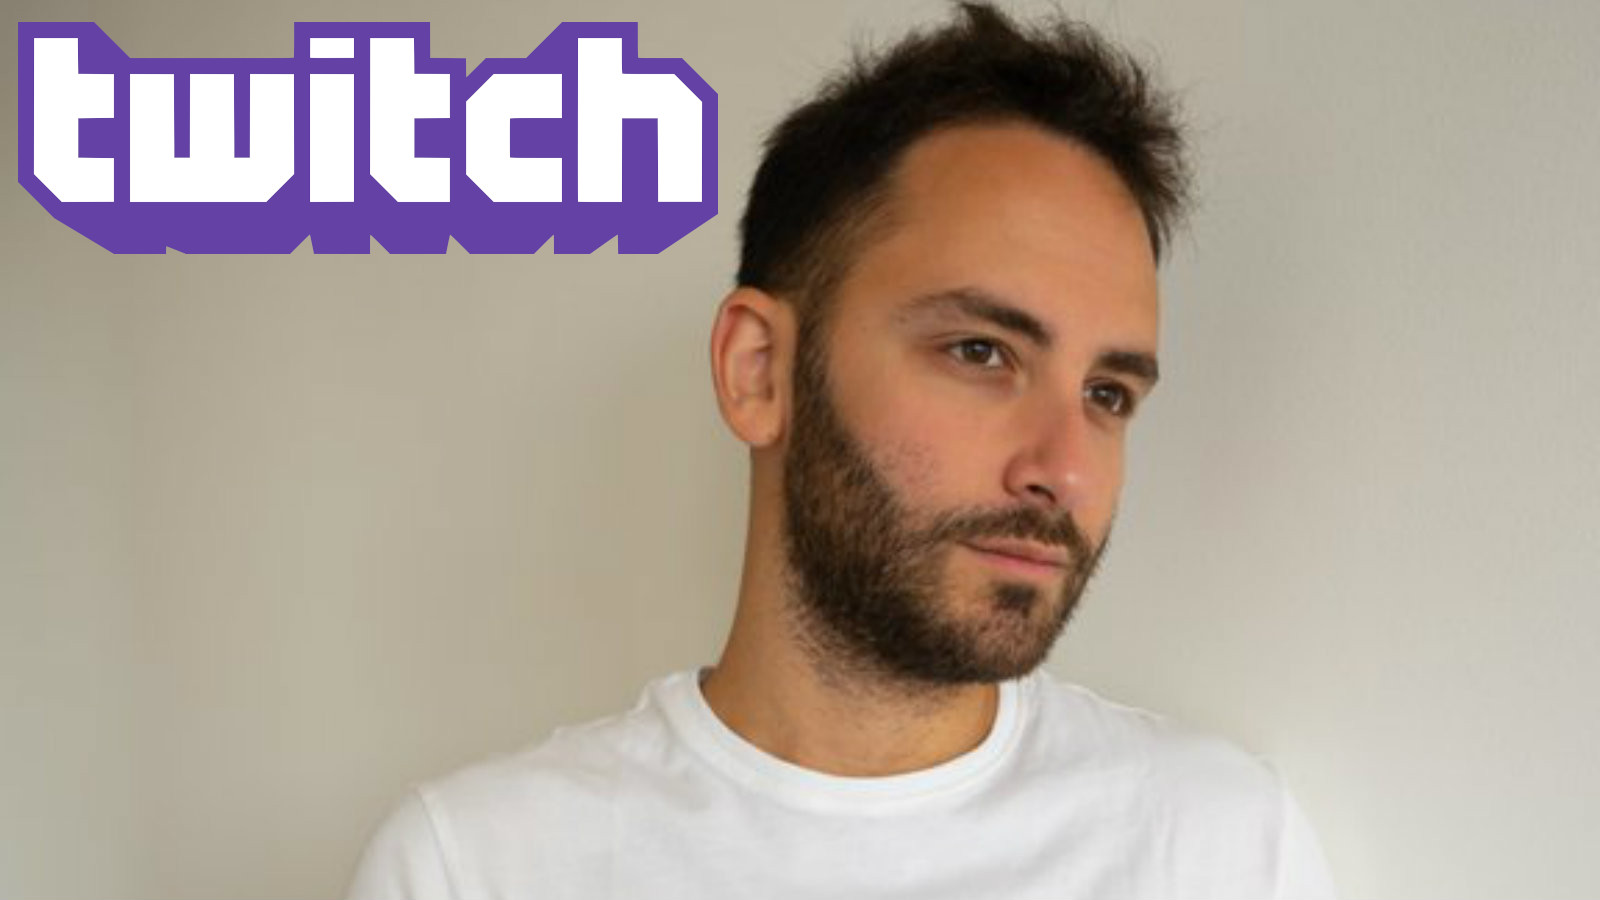 Twitch streamer Reckful